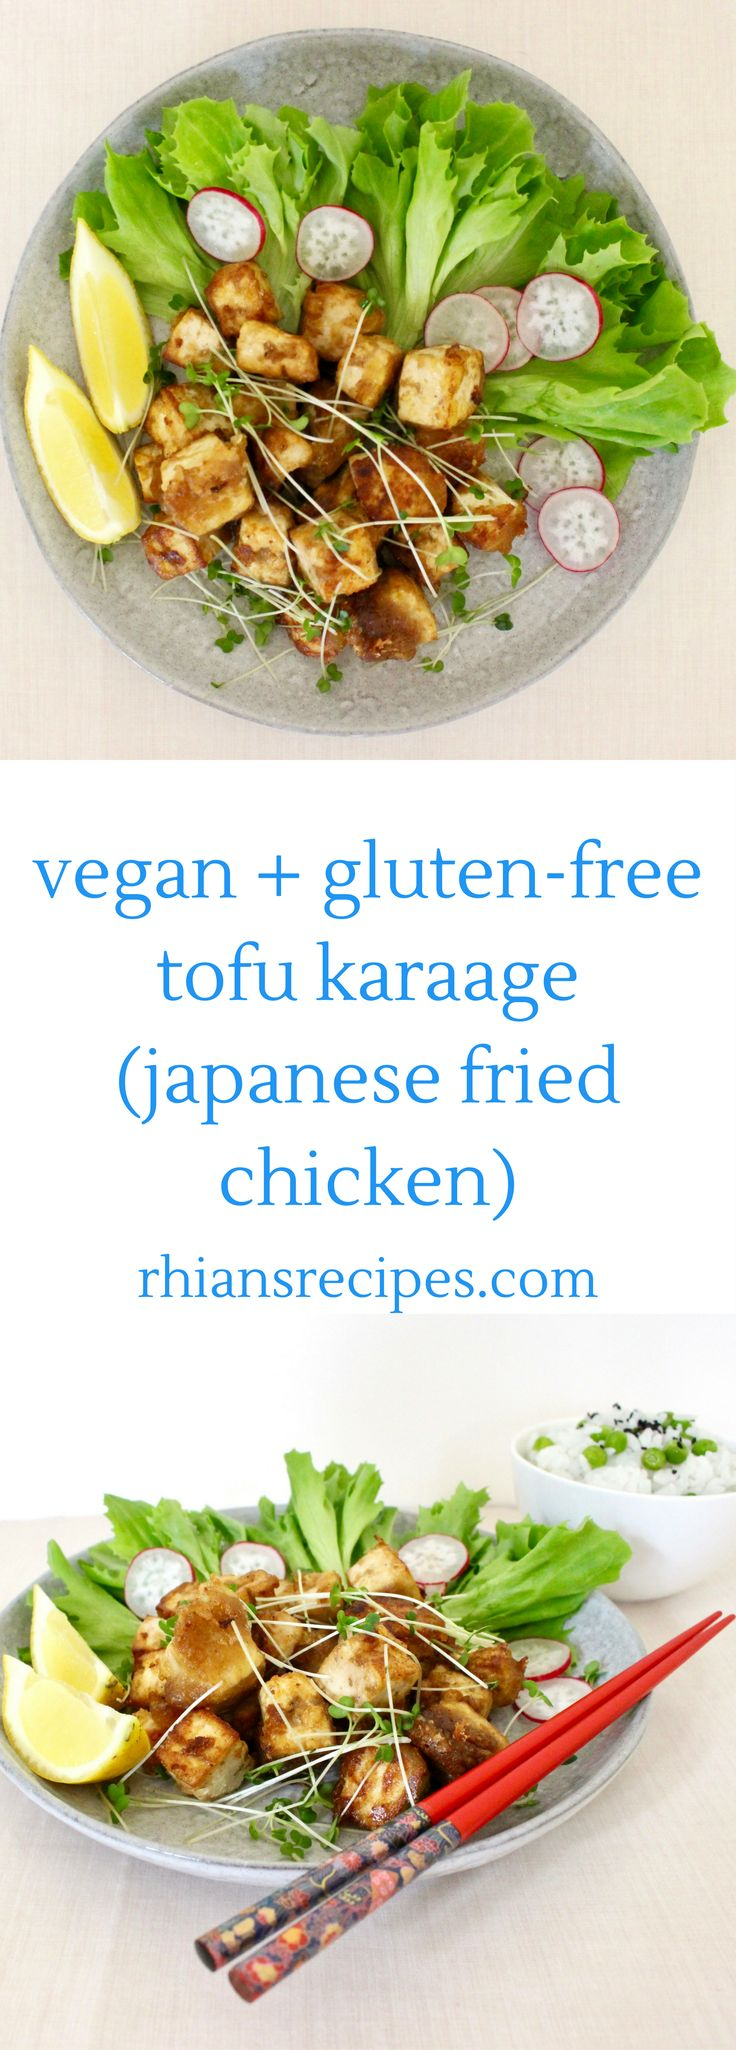 A healthier twist on Japanese fried chicken, this Gluten-Free Vegan Tofu Karaage makes the perfect quick and easy weeknight dinner!